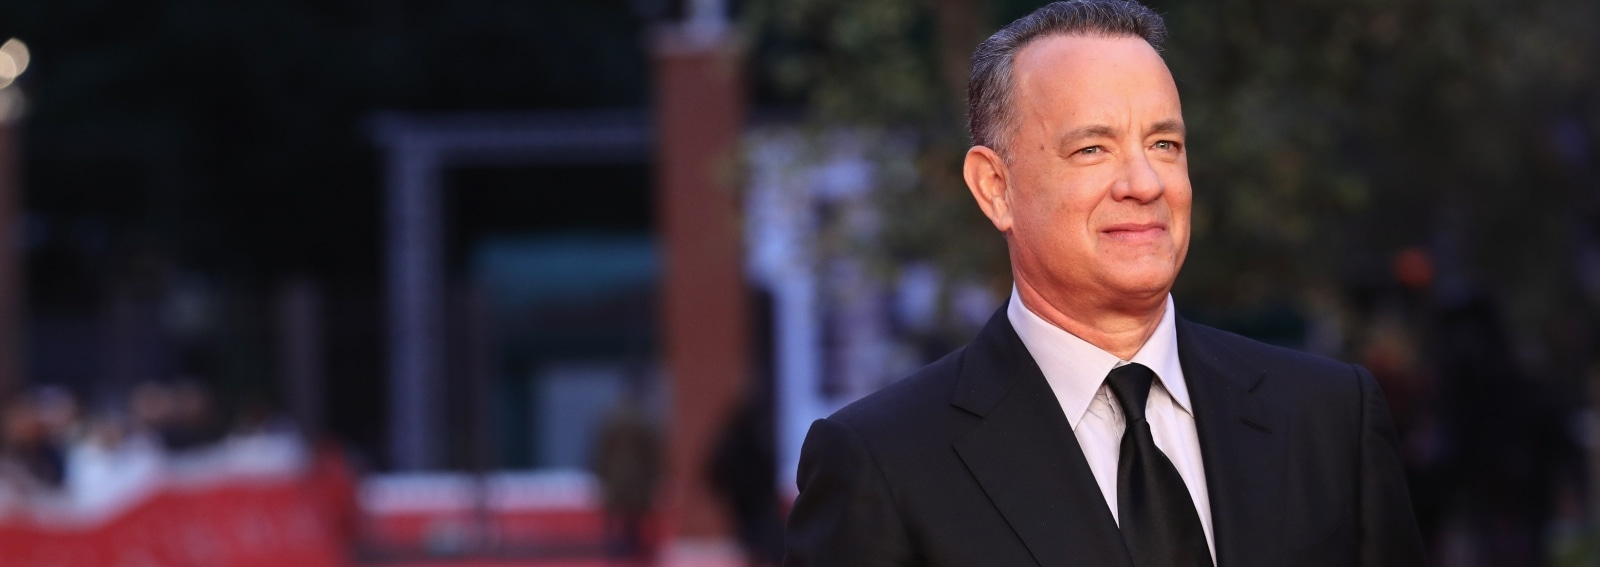 tom hanks (1)